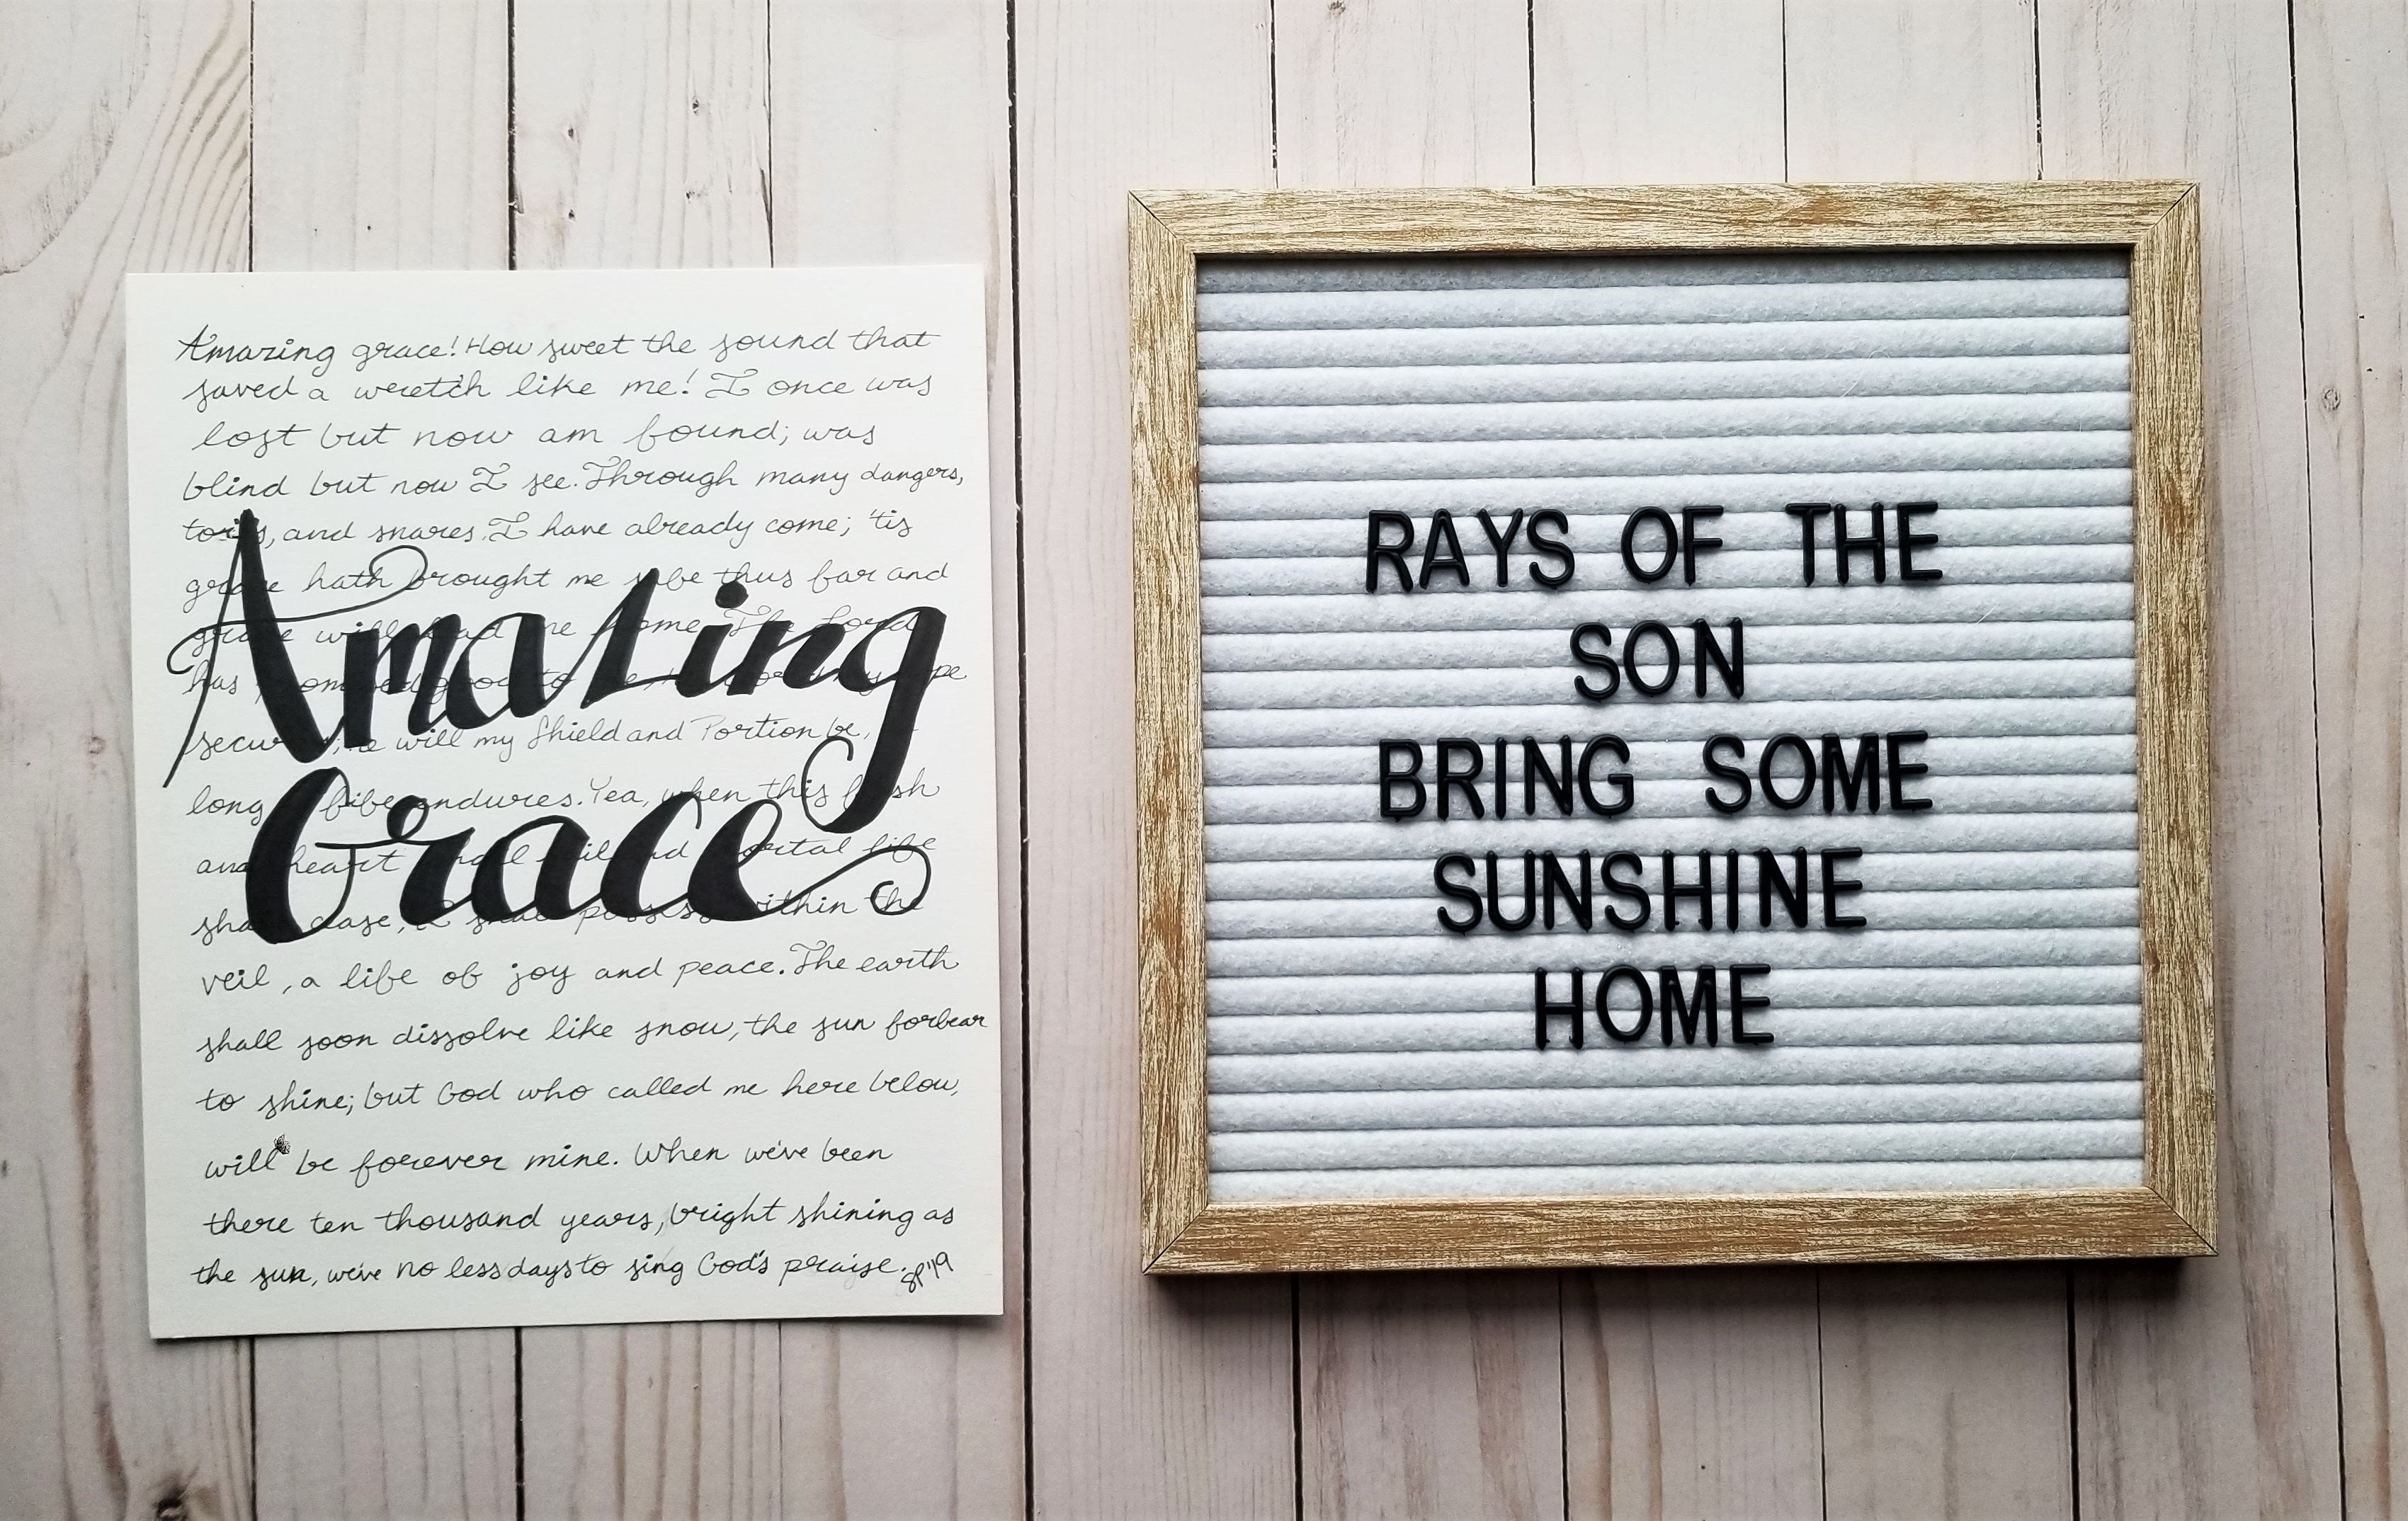 Amazing Grace Word Art - Rays of the Son